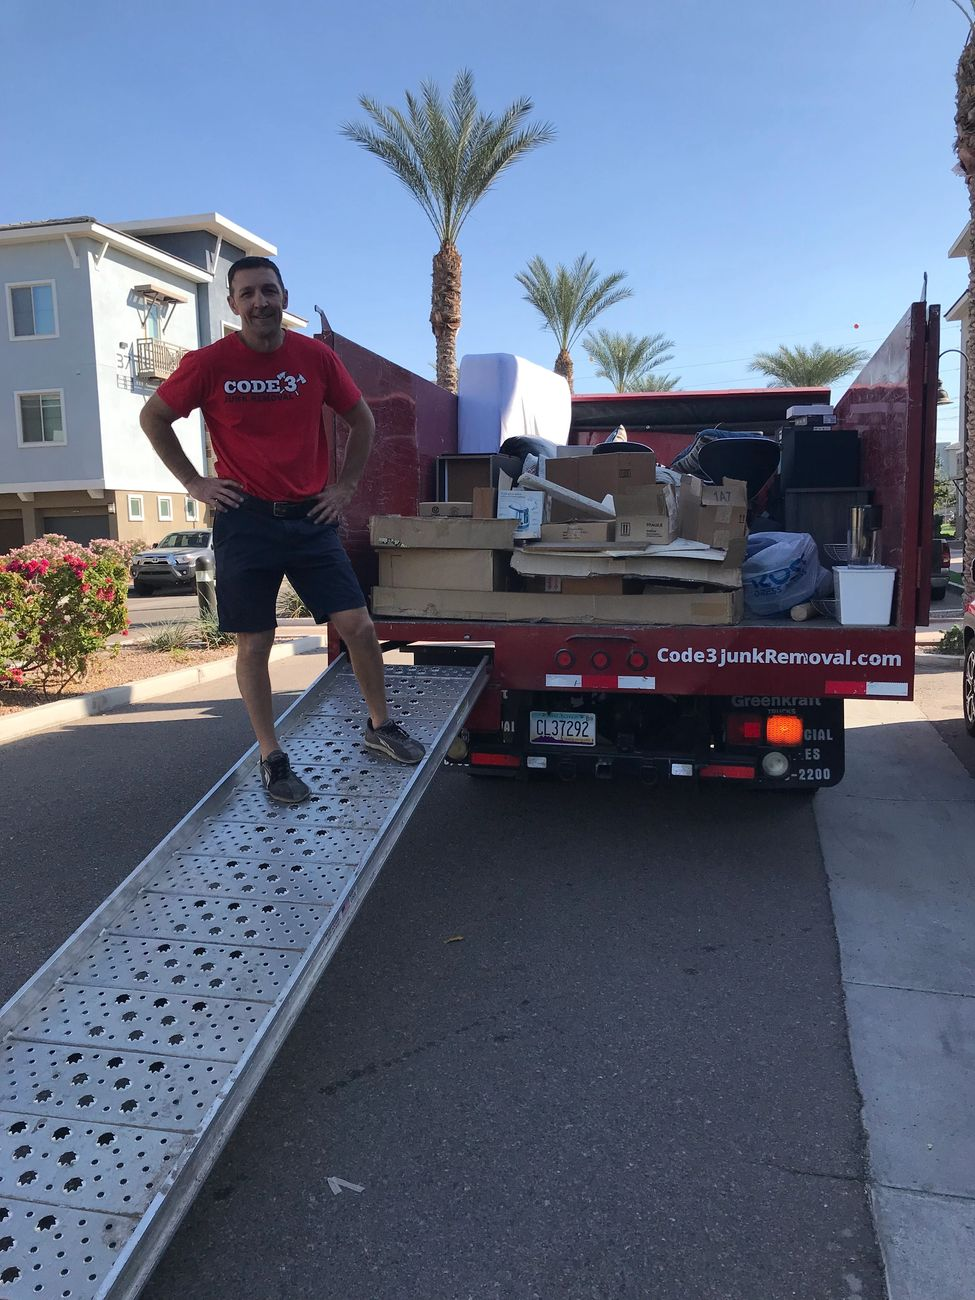 Curbside Pickup Load in Code 3 Junk Removal Truck